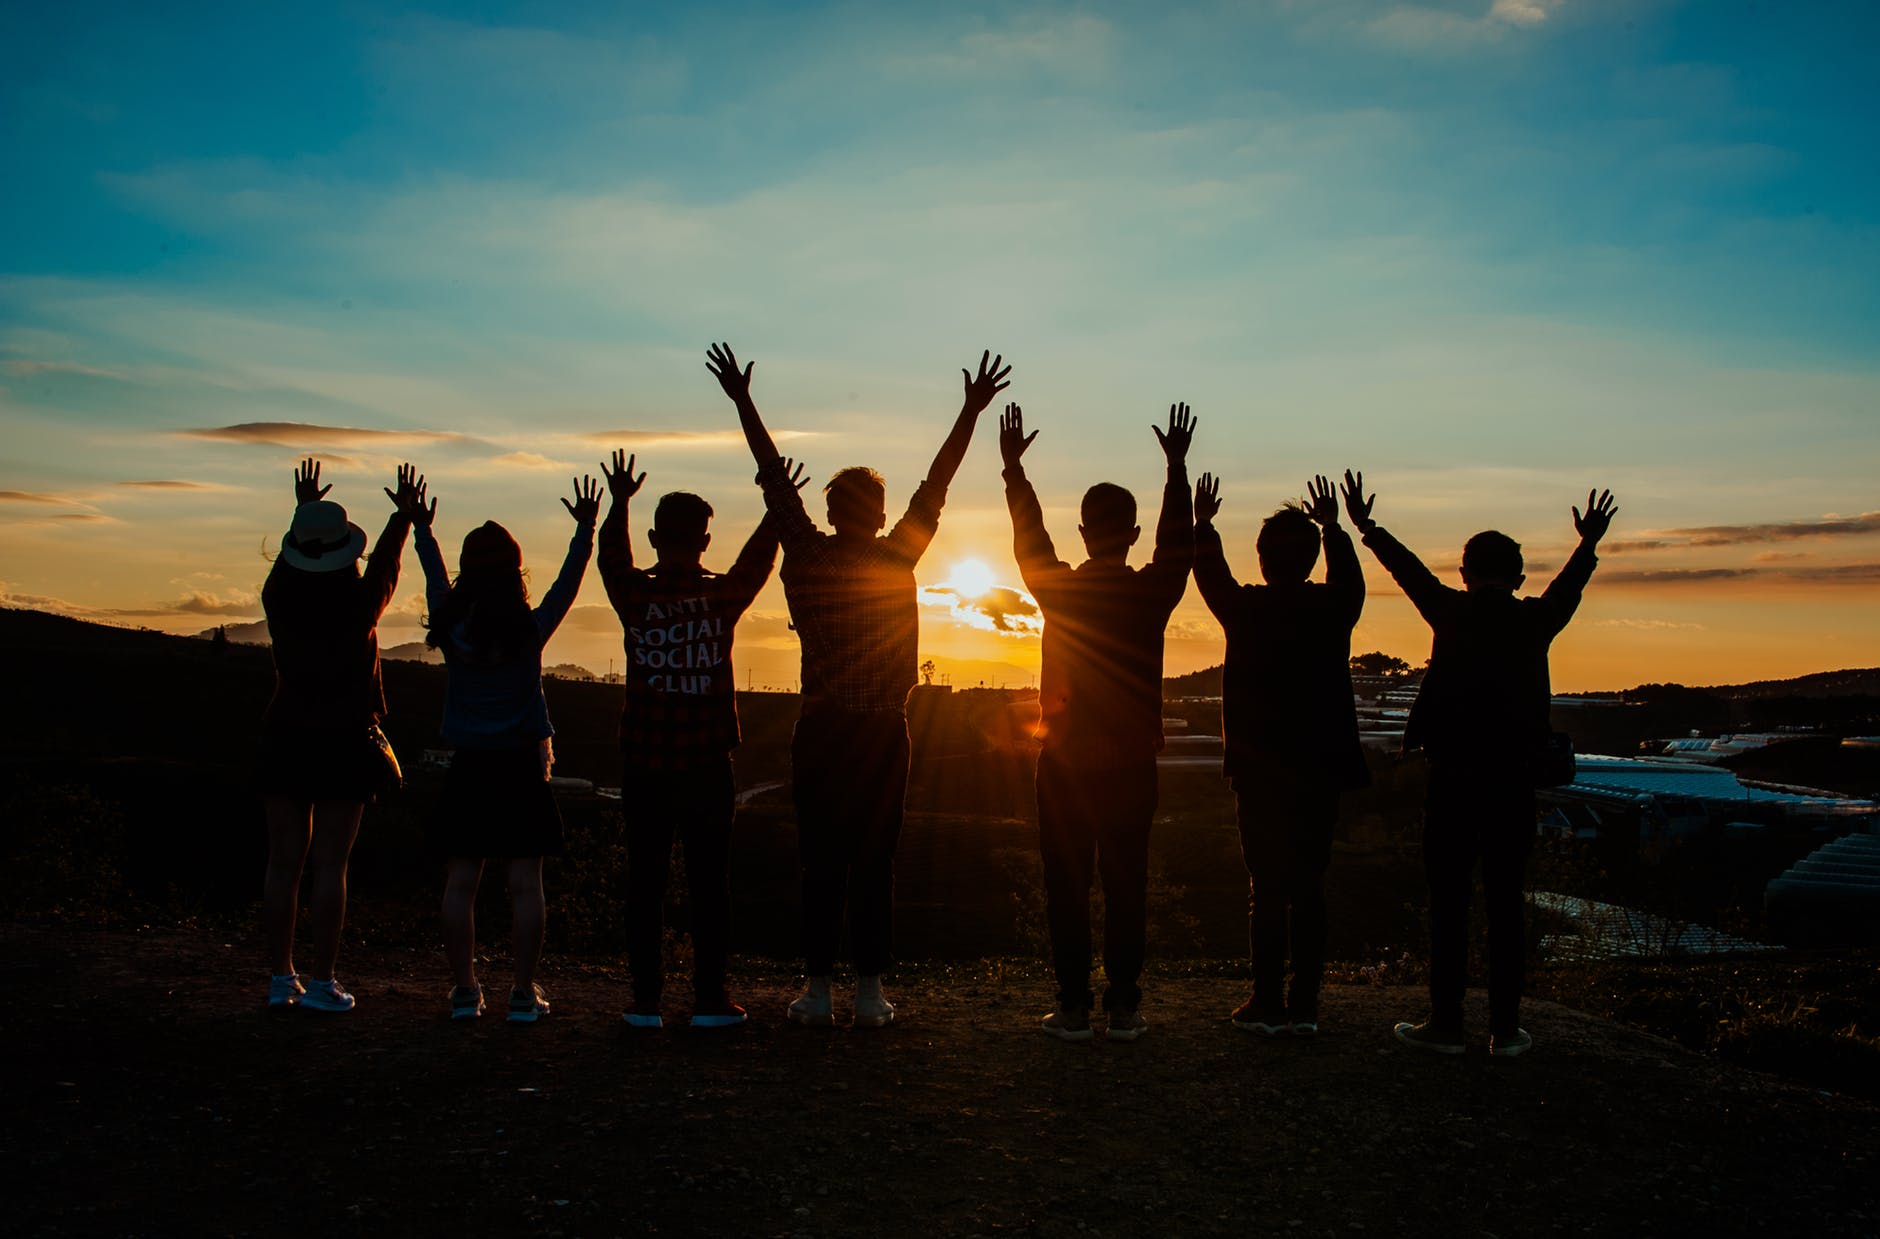 Silhouette of group picture with a sunset